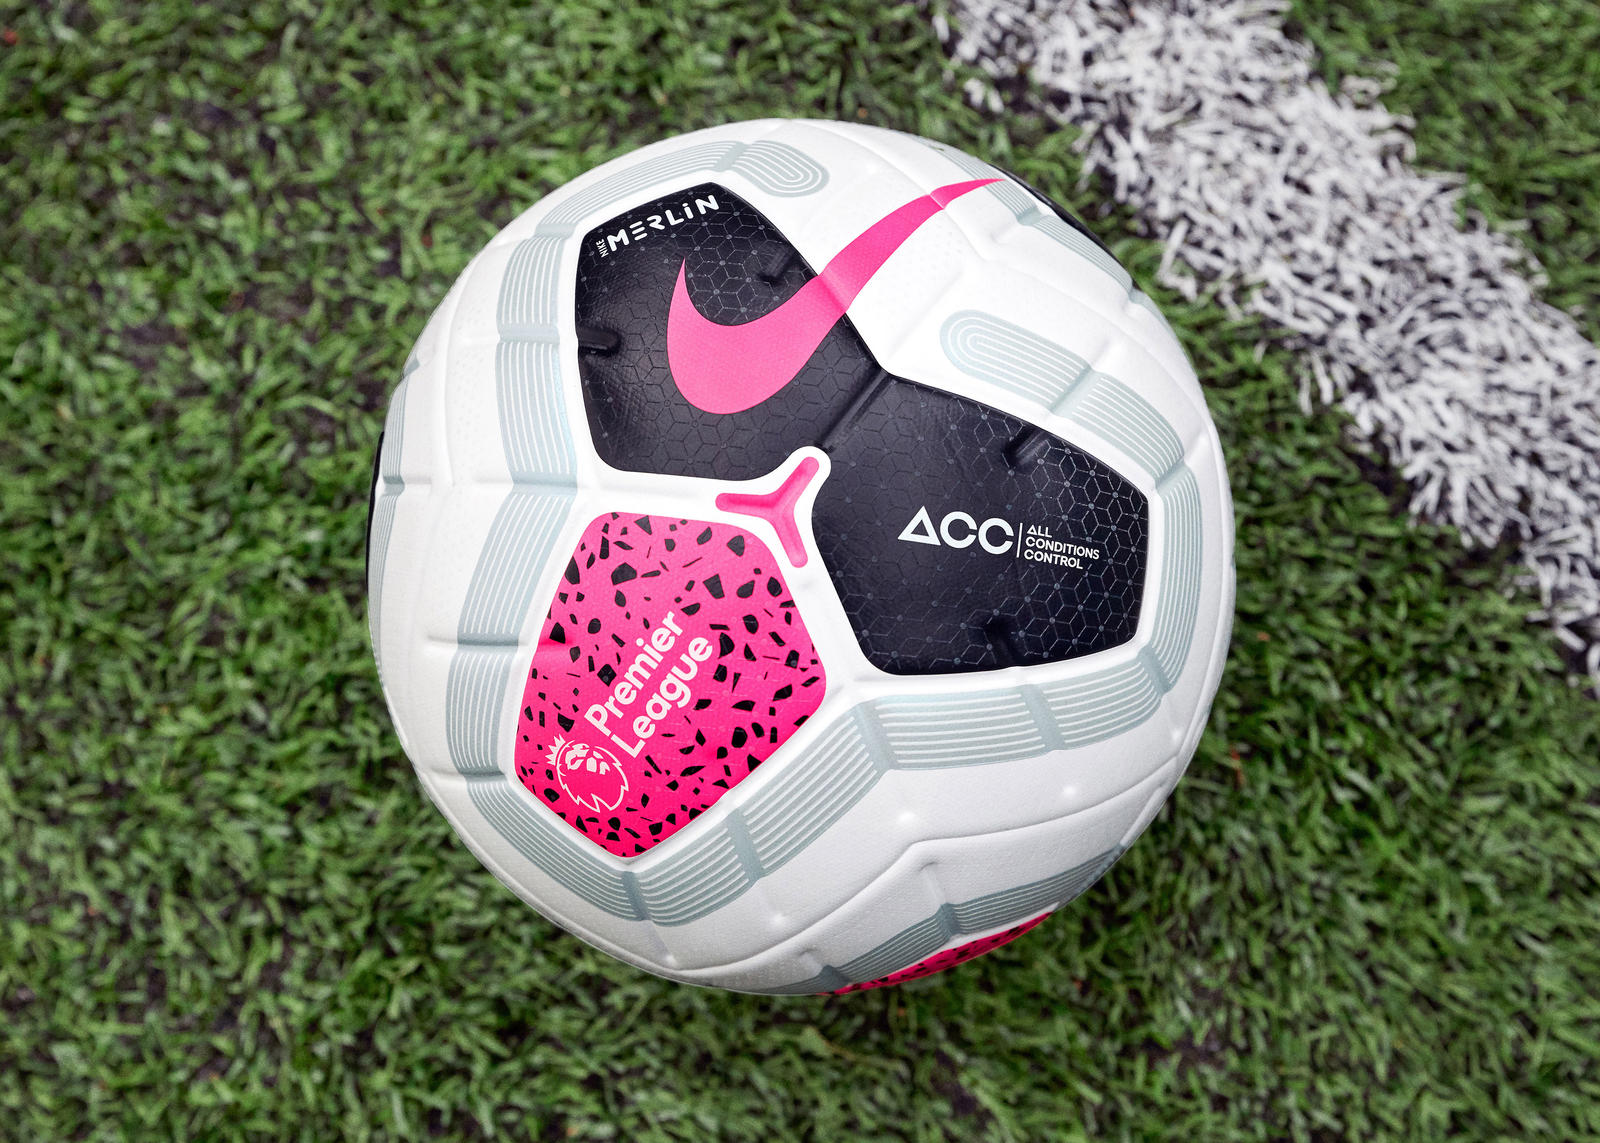 Nike and Premier League Merlin Football 2019-20 0